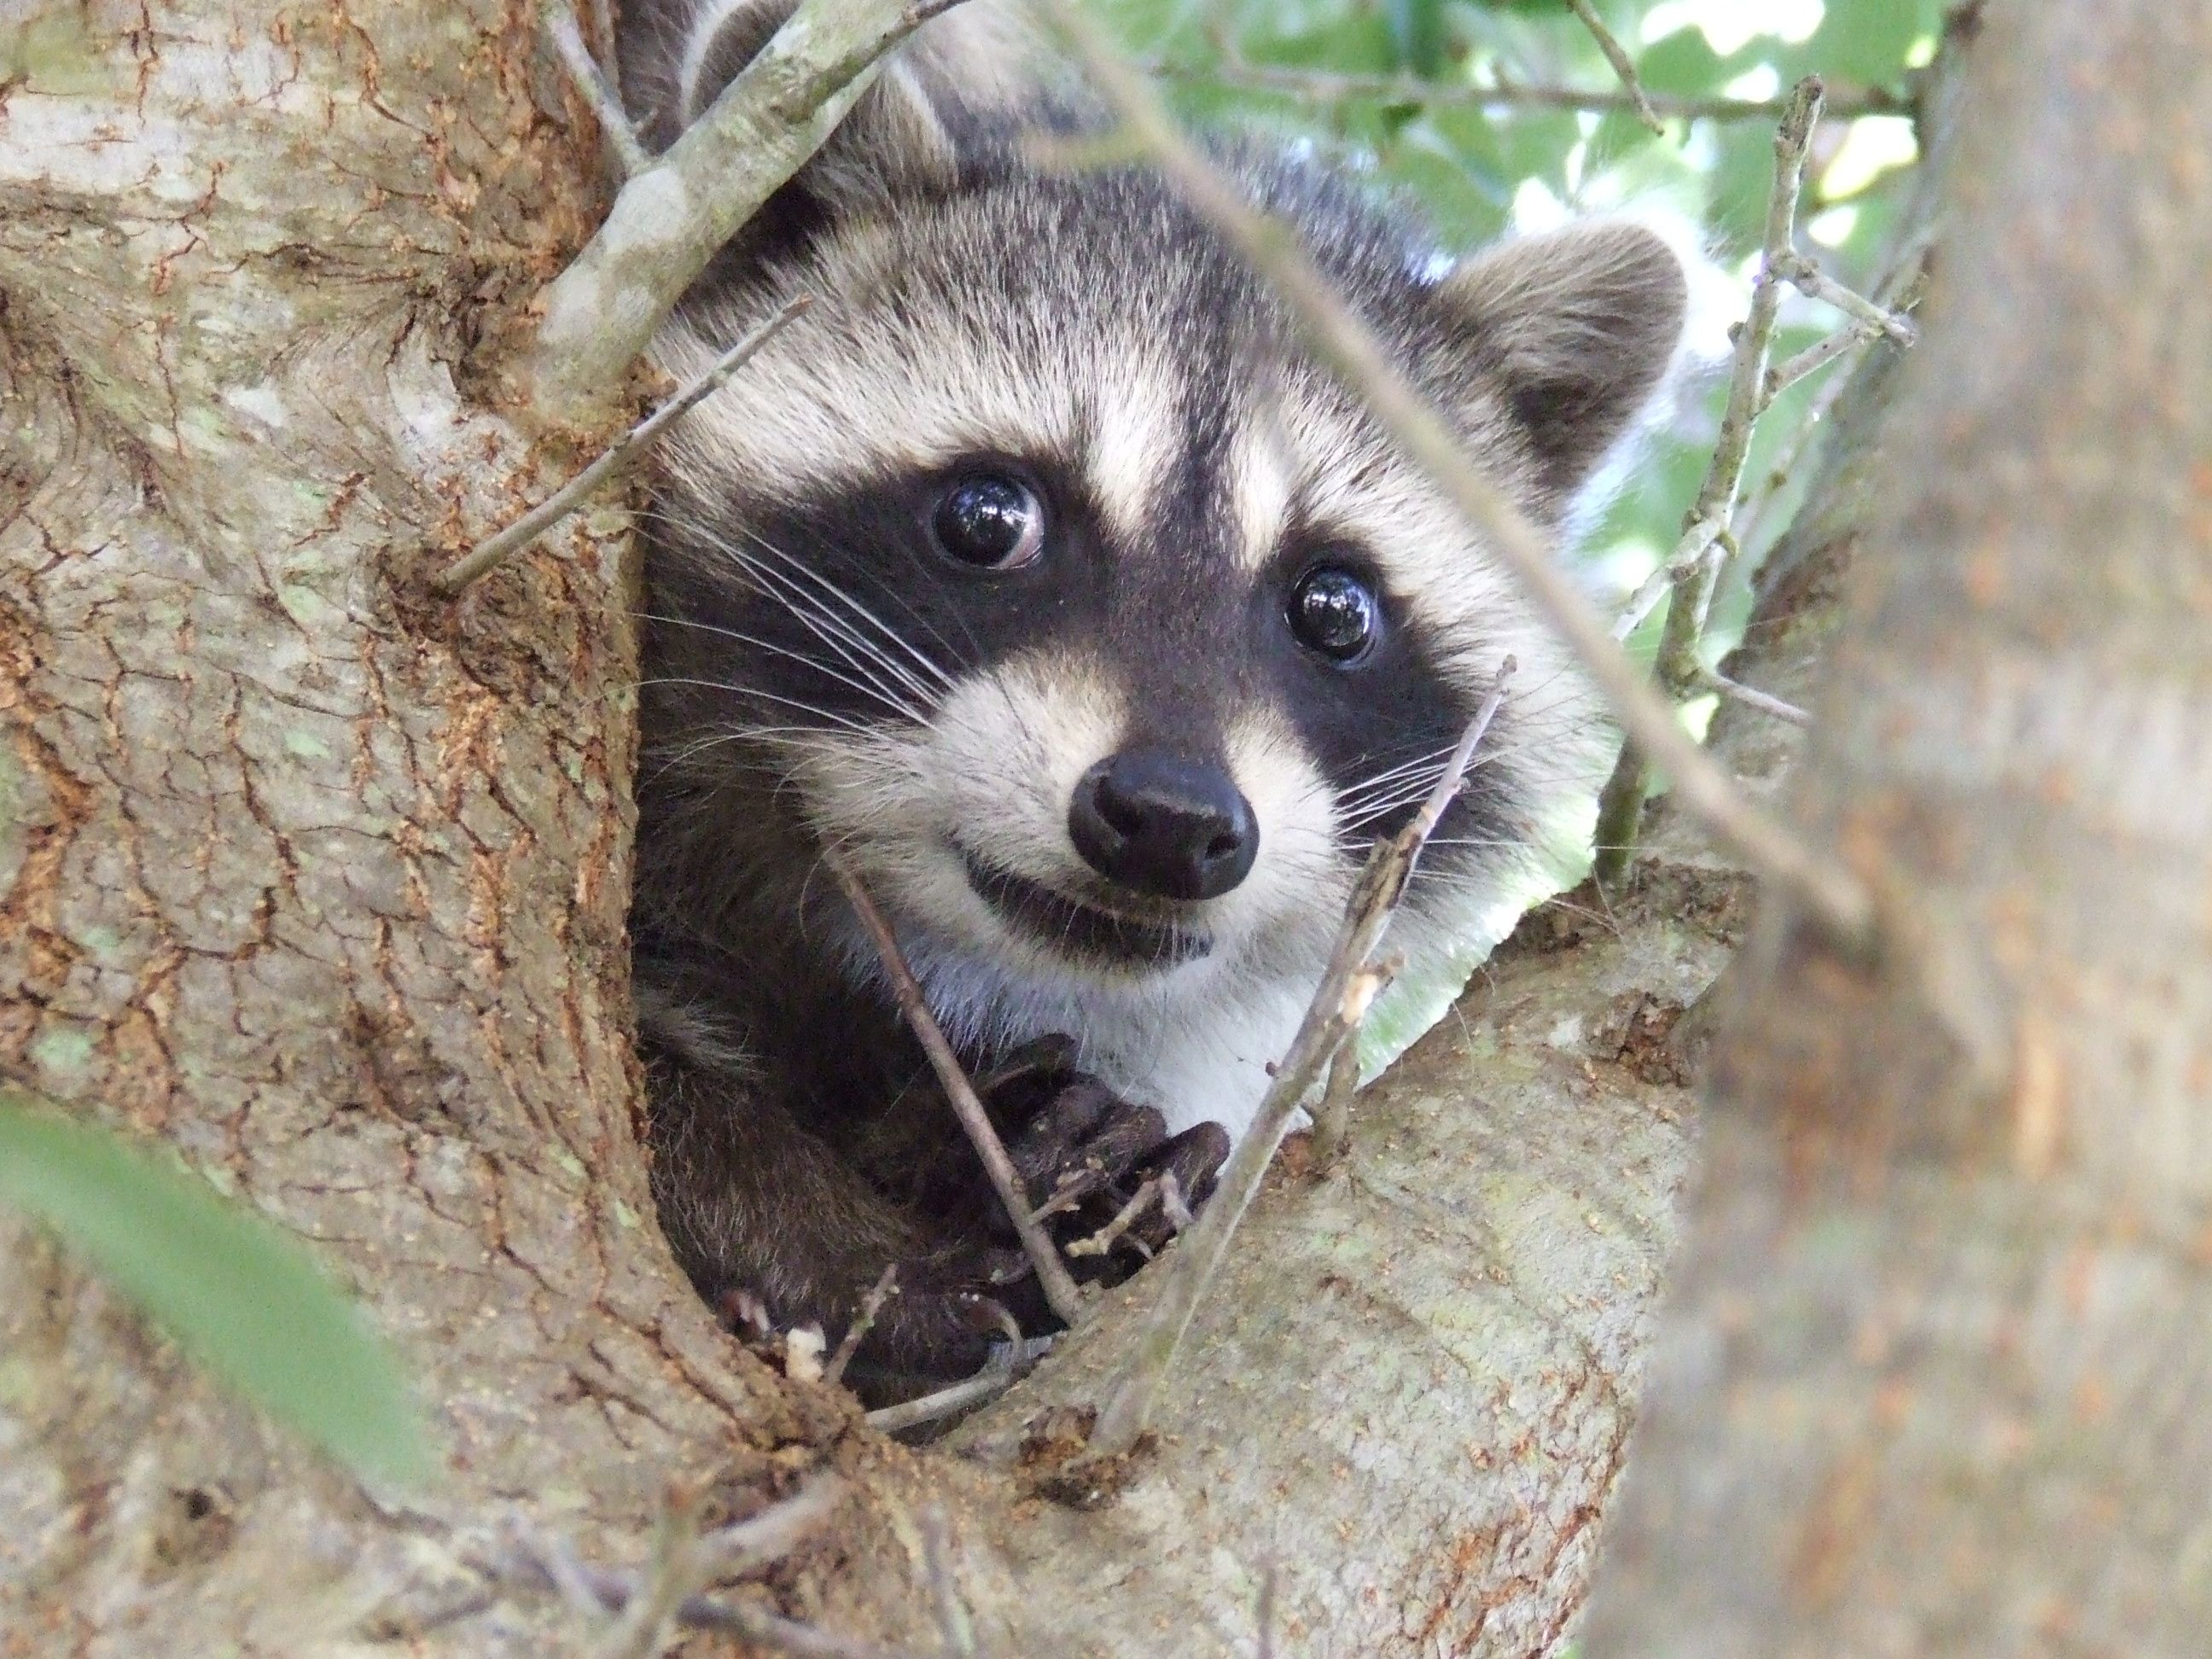 6caf0c7bbd2d7543d791a3319ed4bd58 racoon google search animals pinterest racoon, baby racoon